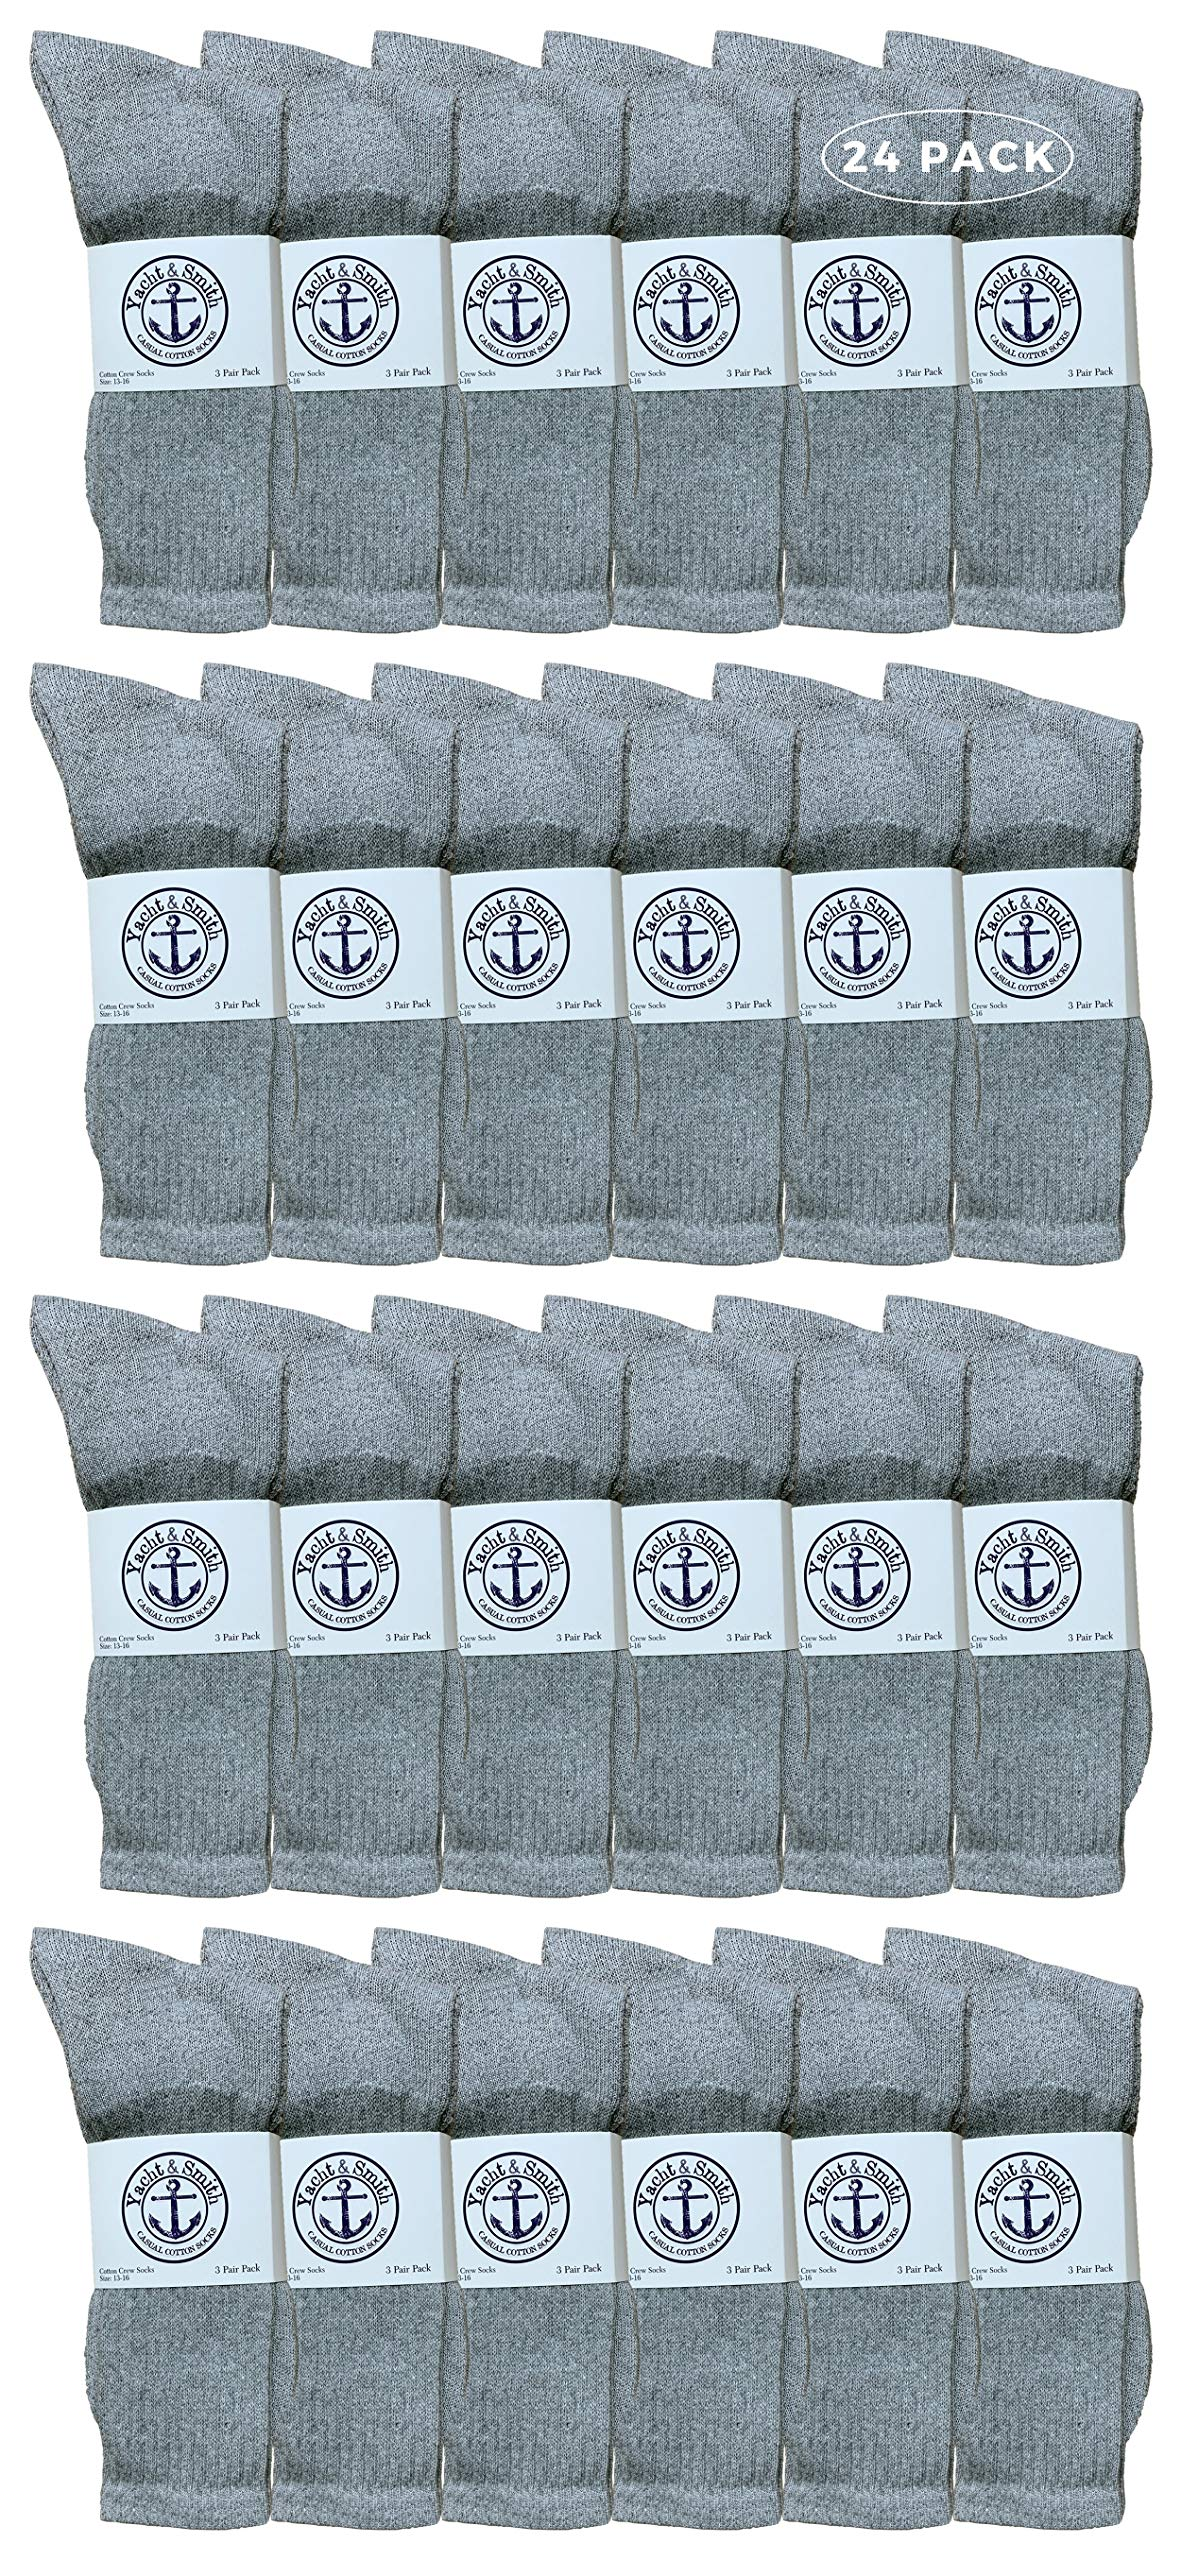 Yacht & Smith Wholesale Bulk Mens Crew Socks, Cotton Big And Tall Plus Size Socks Size 13-39 by Yacht & Smith